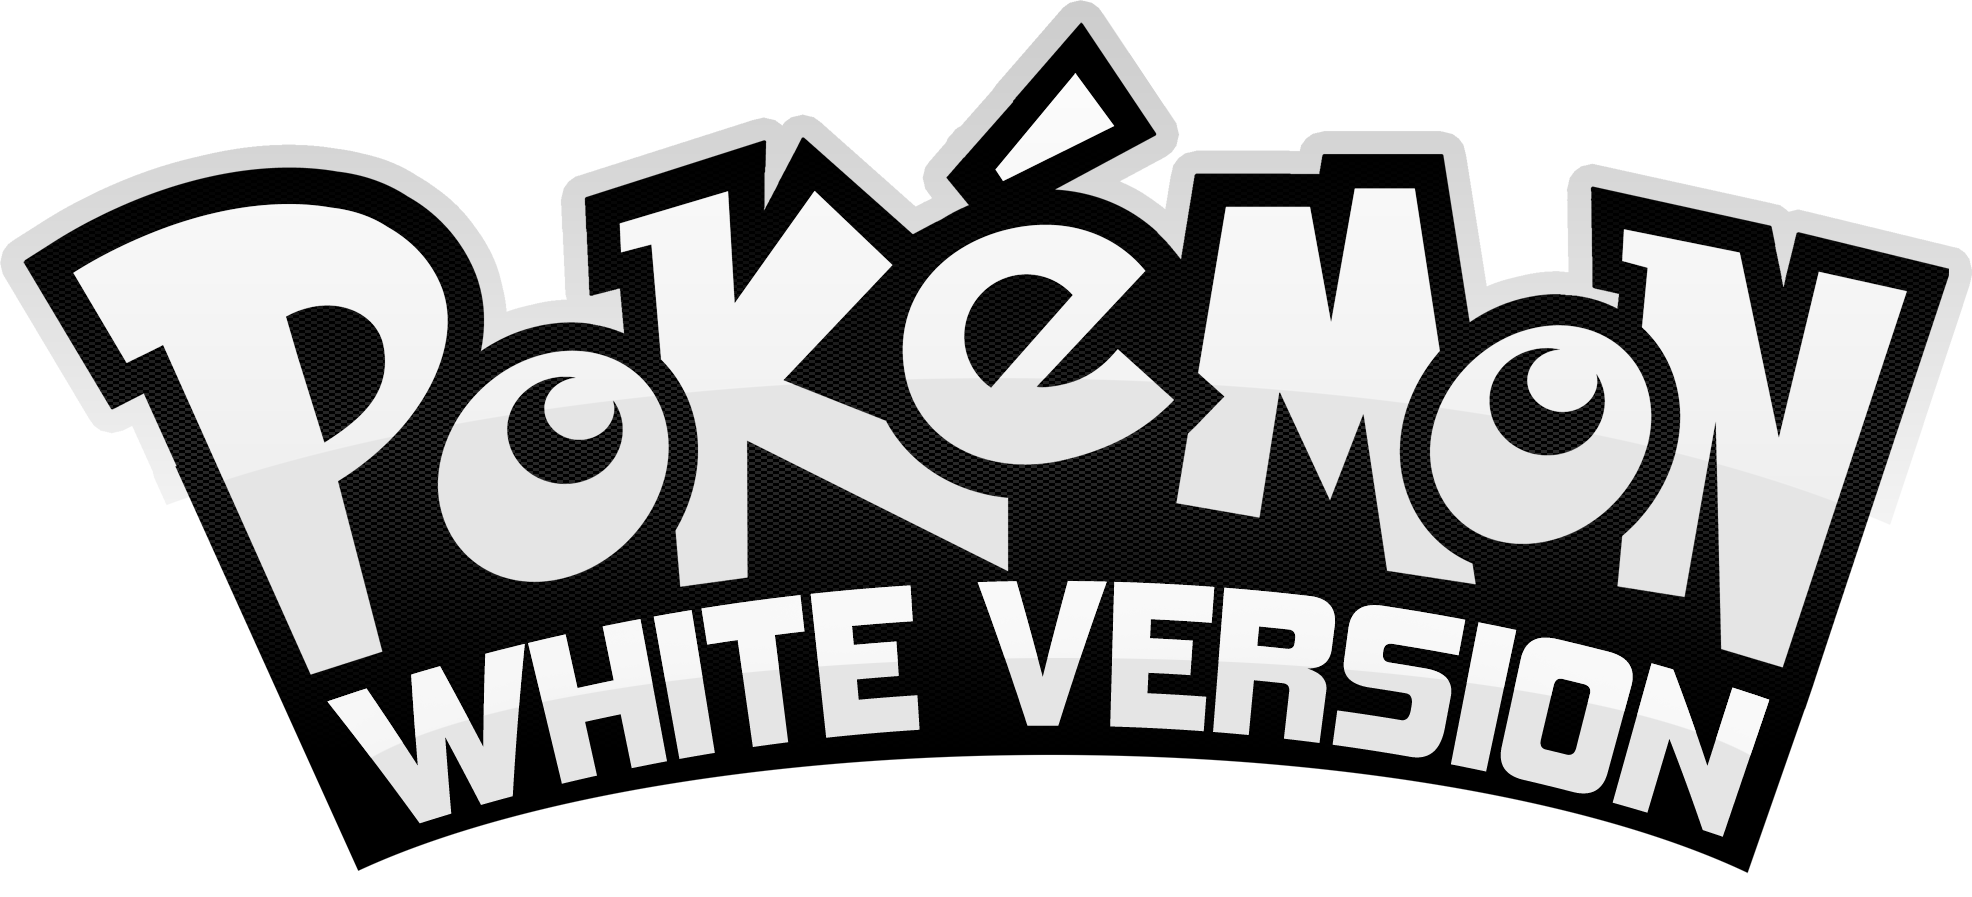 Pokemon White Version Logo 160485920